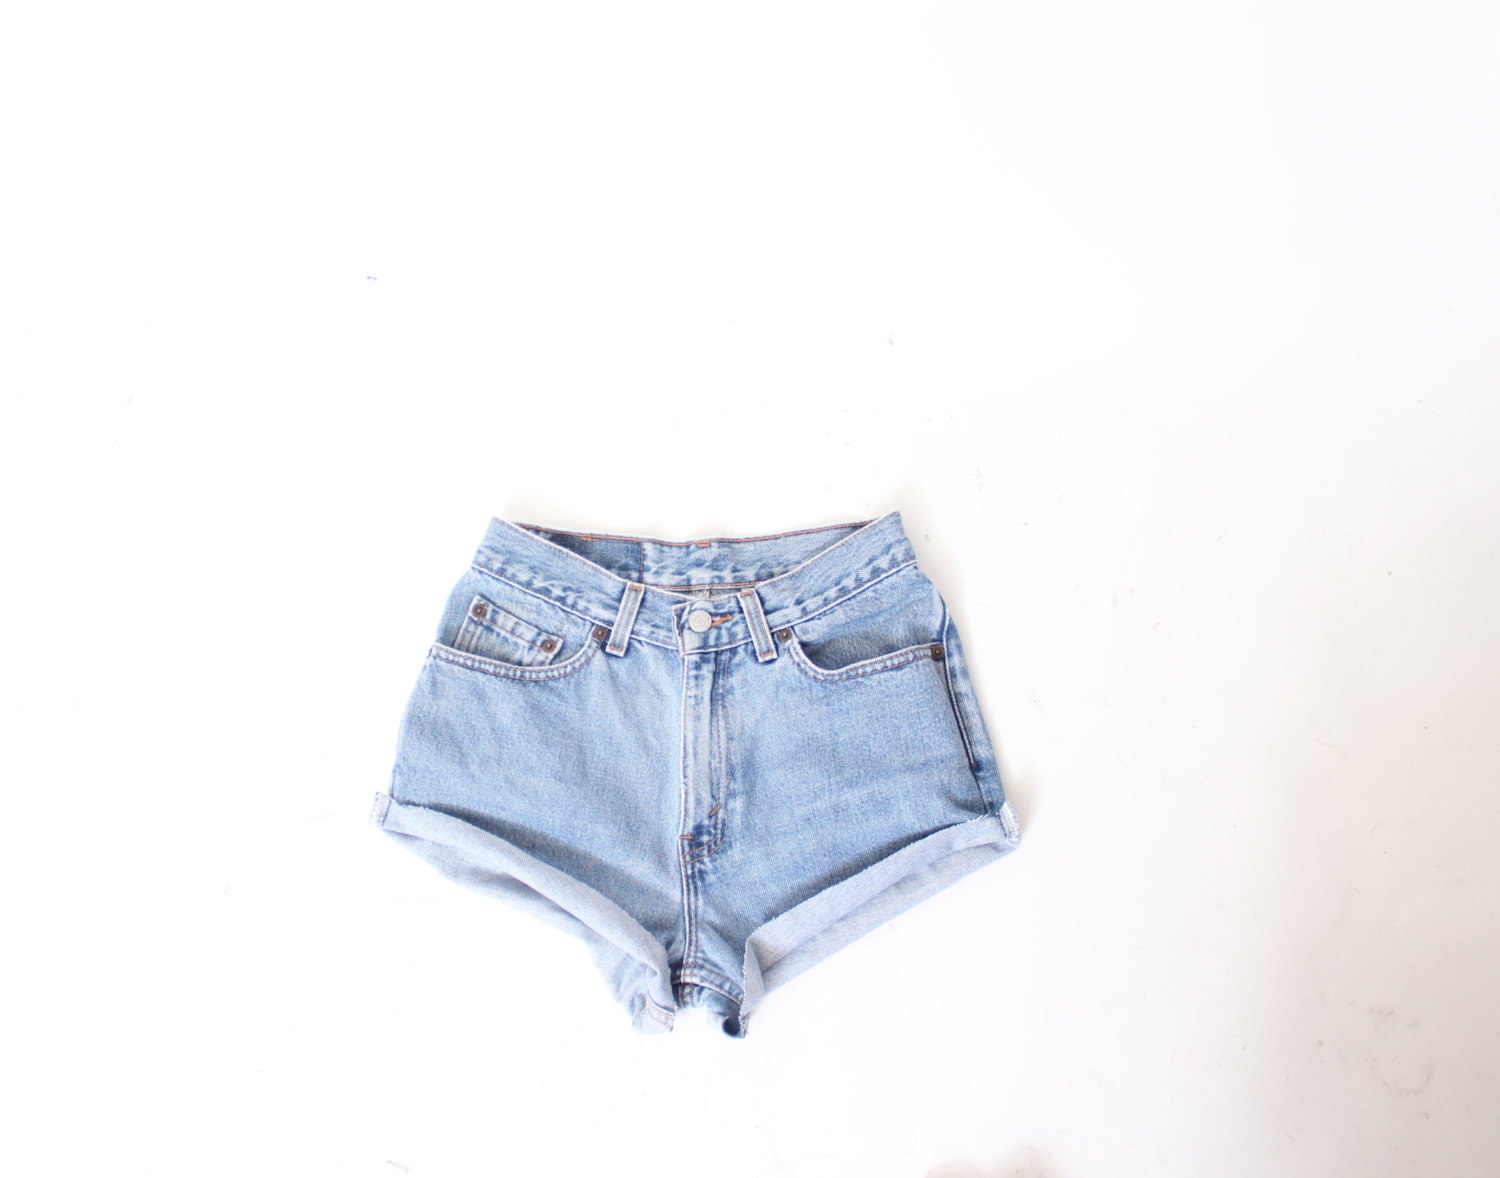 Custom Made Daisy Dukes High Waist Shorts xS S M L